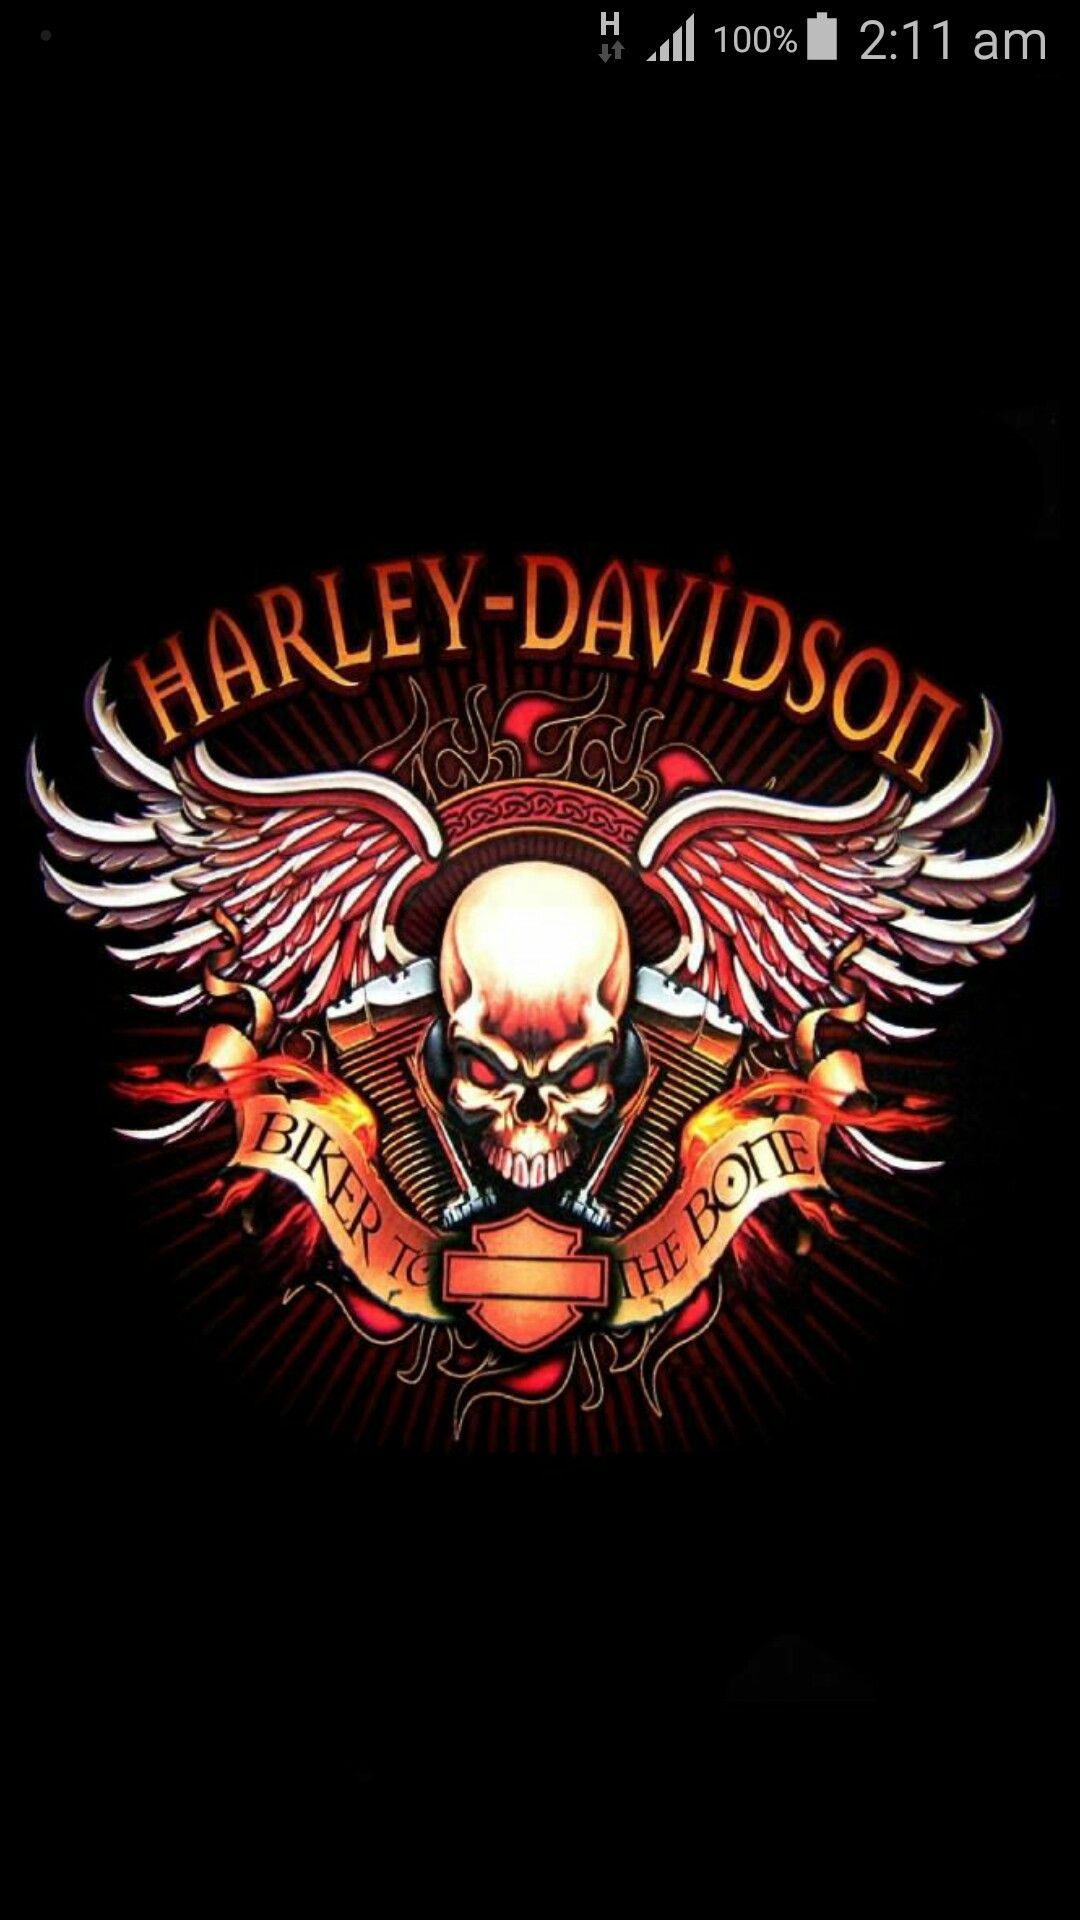 Skull Harley Davidson Android Background in 2020 Harley